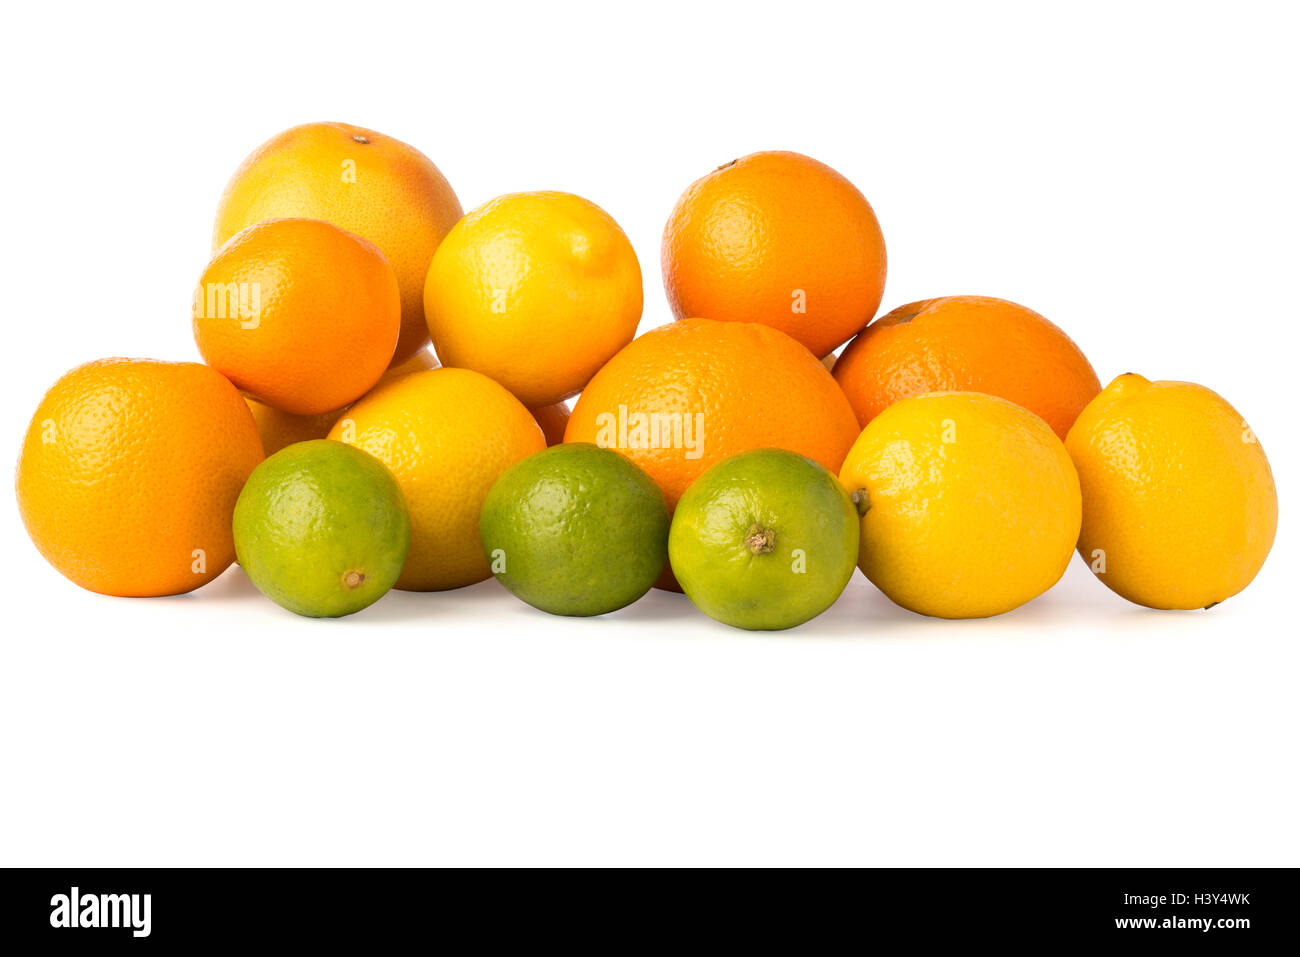 Cutout of a collection of citrus fruits including oranges, grapefruit, lemons, and lime. - Stock Image